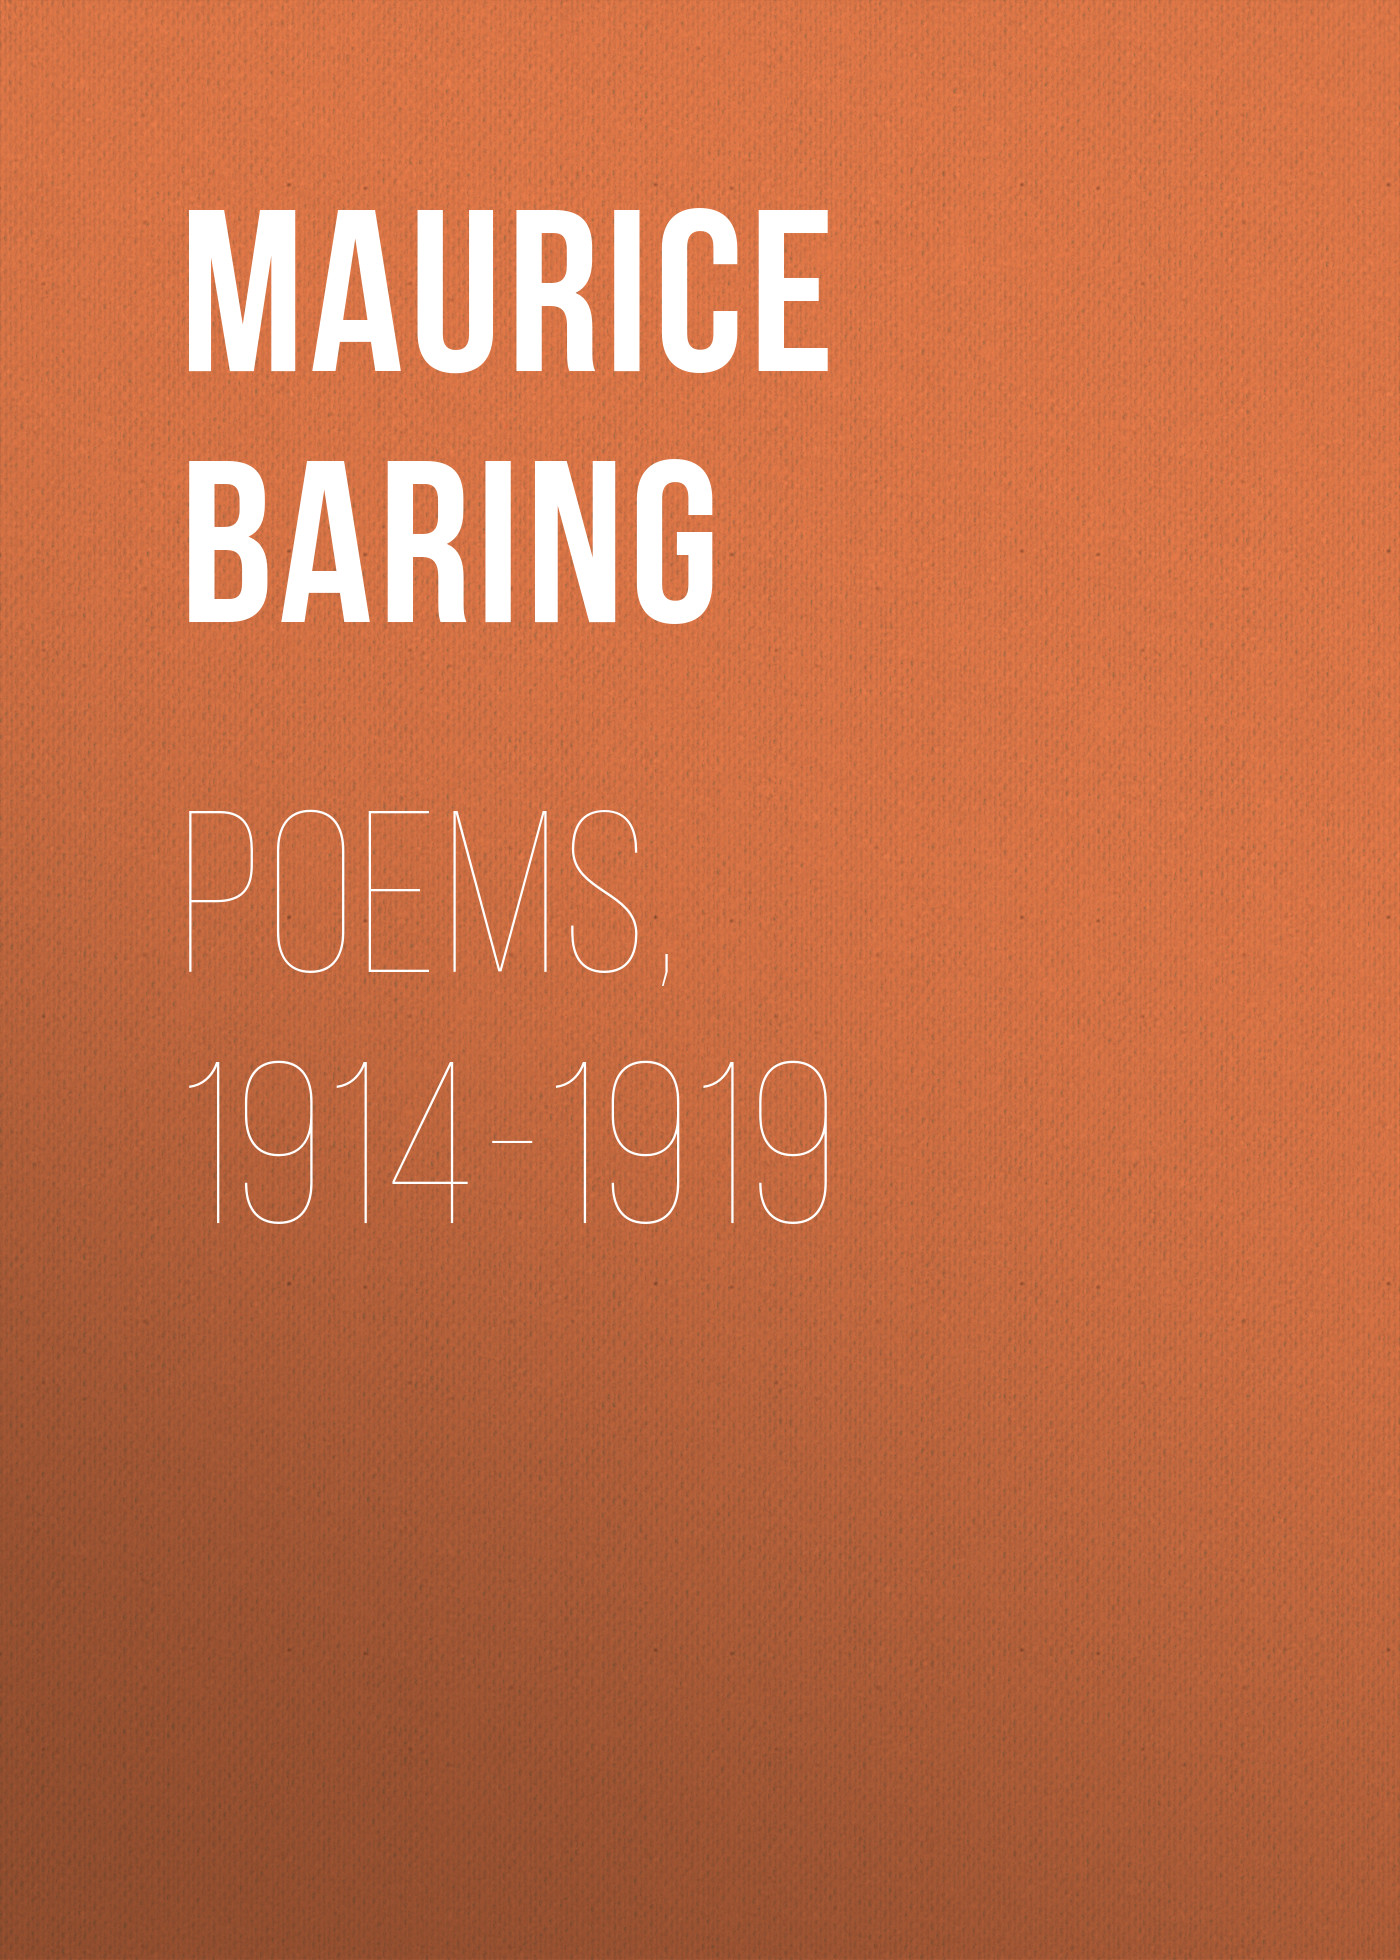 Baring Maurice Poems, 1914-1919